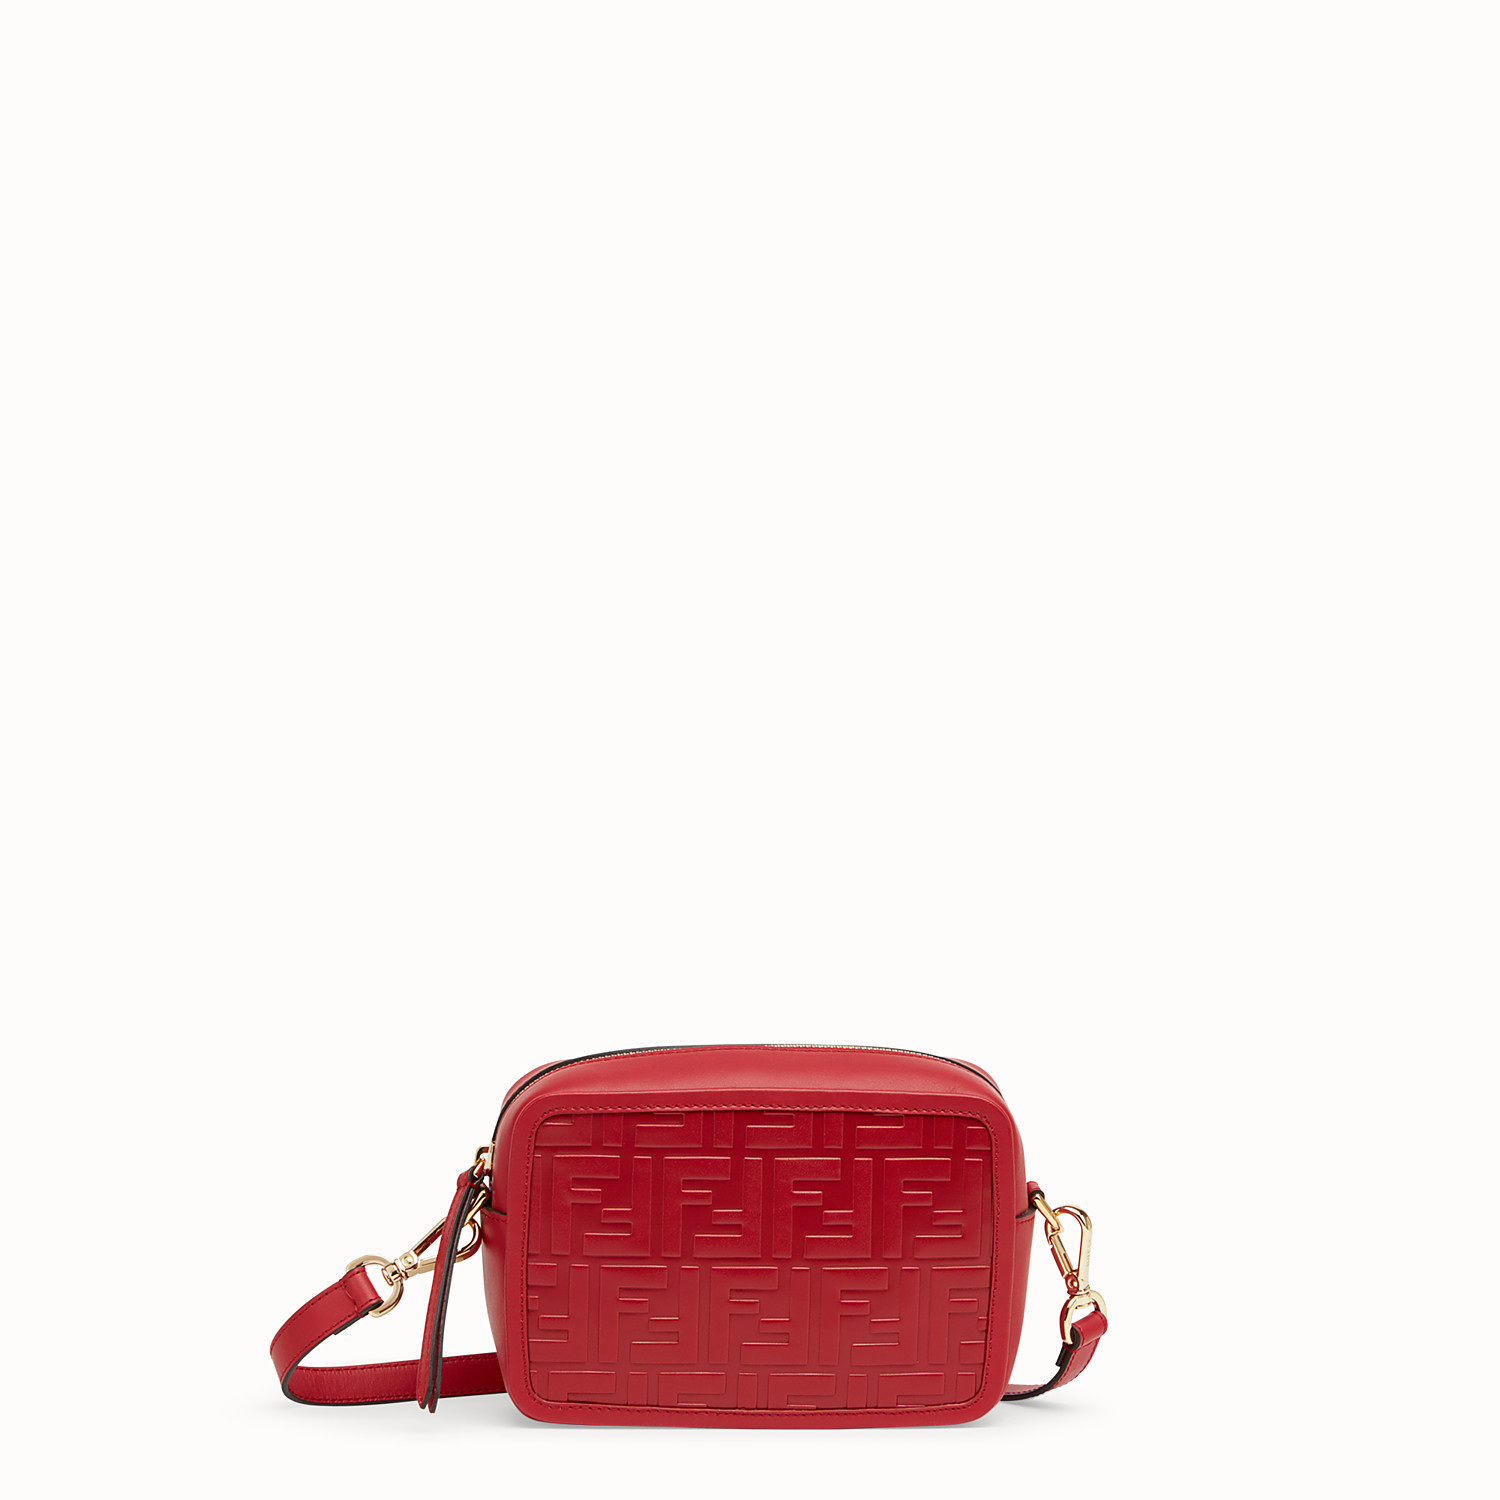 Fendi Mini Camera Case In Red